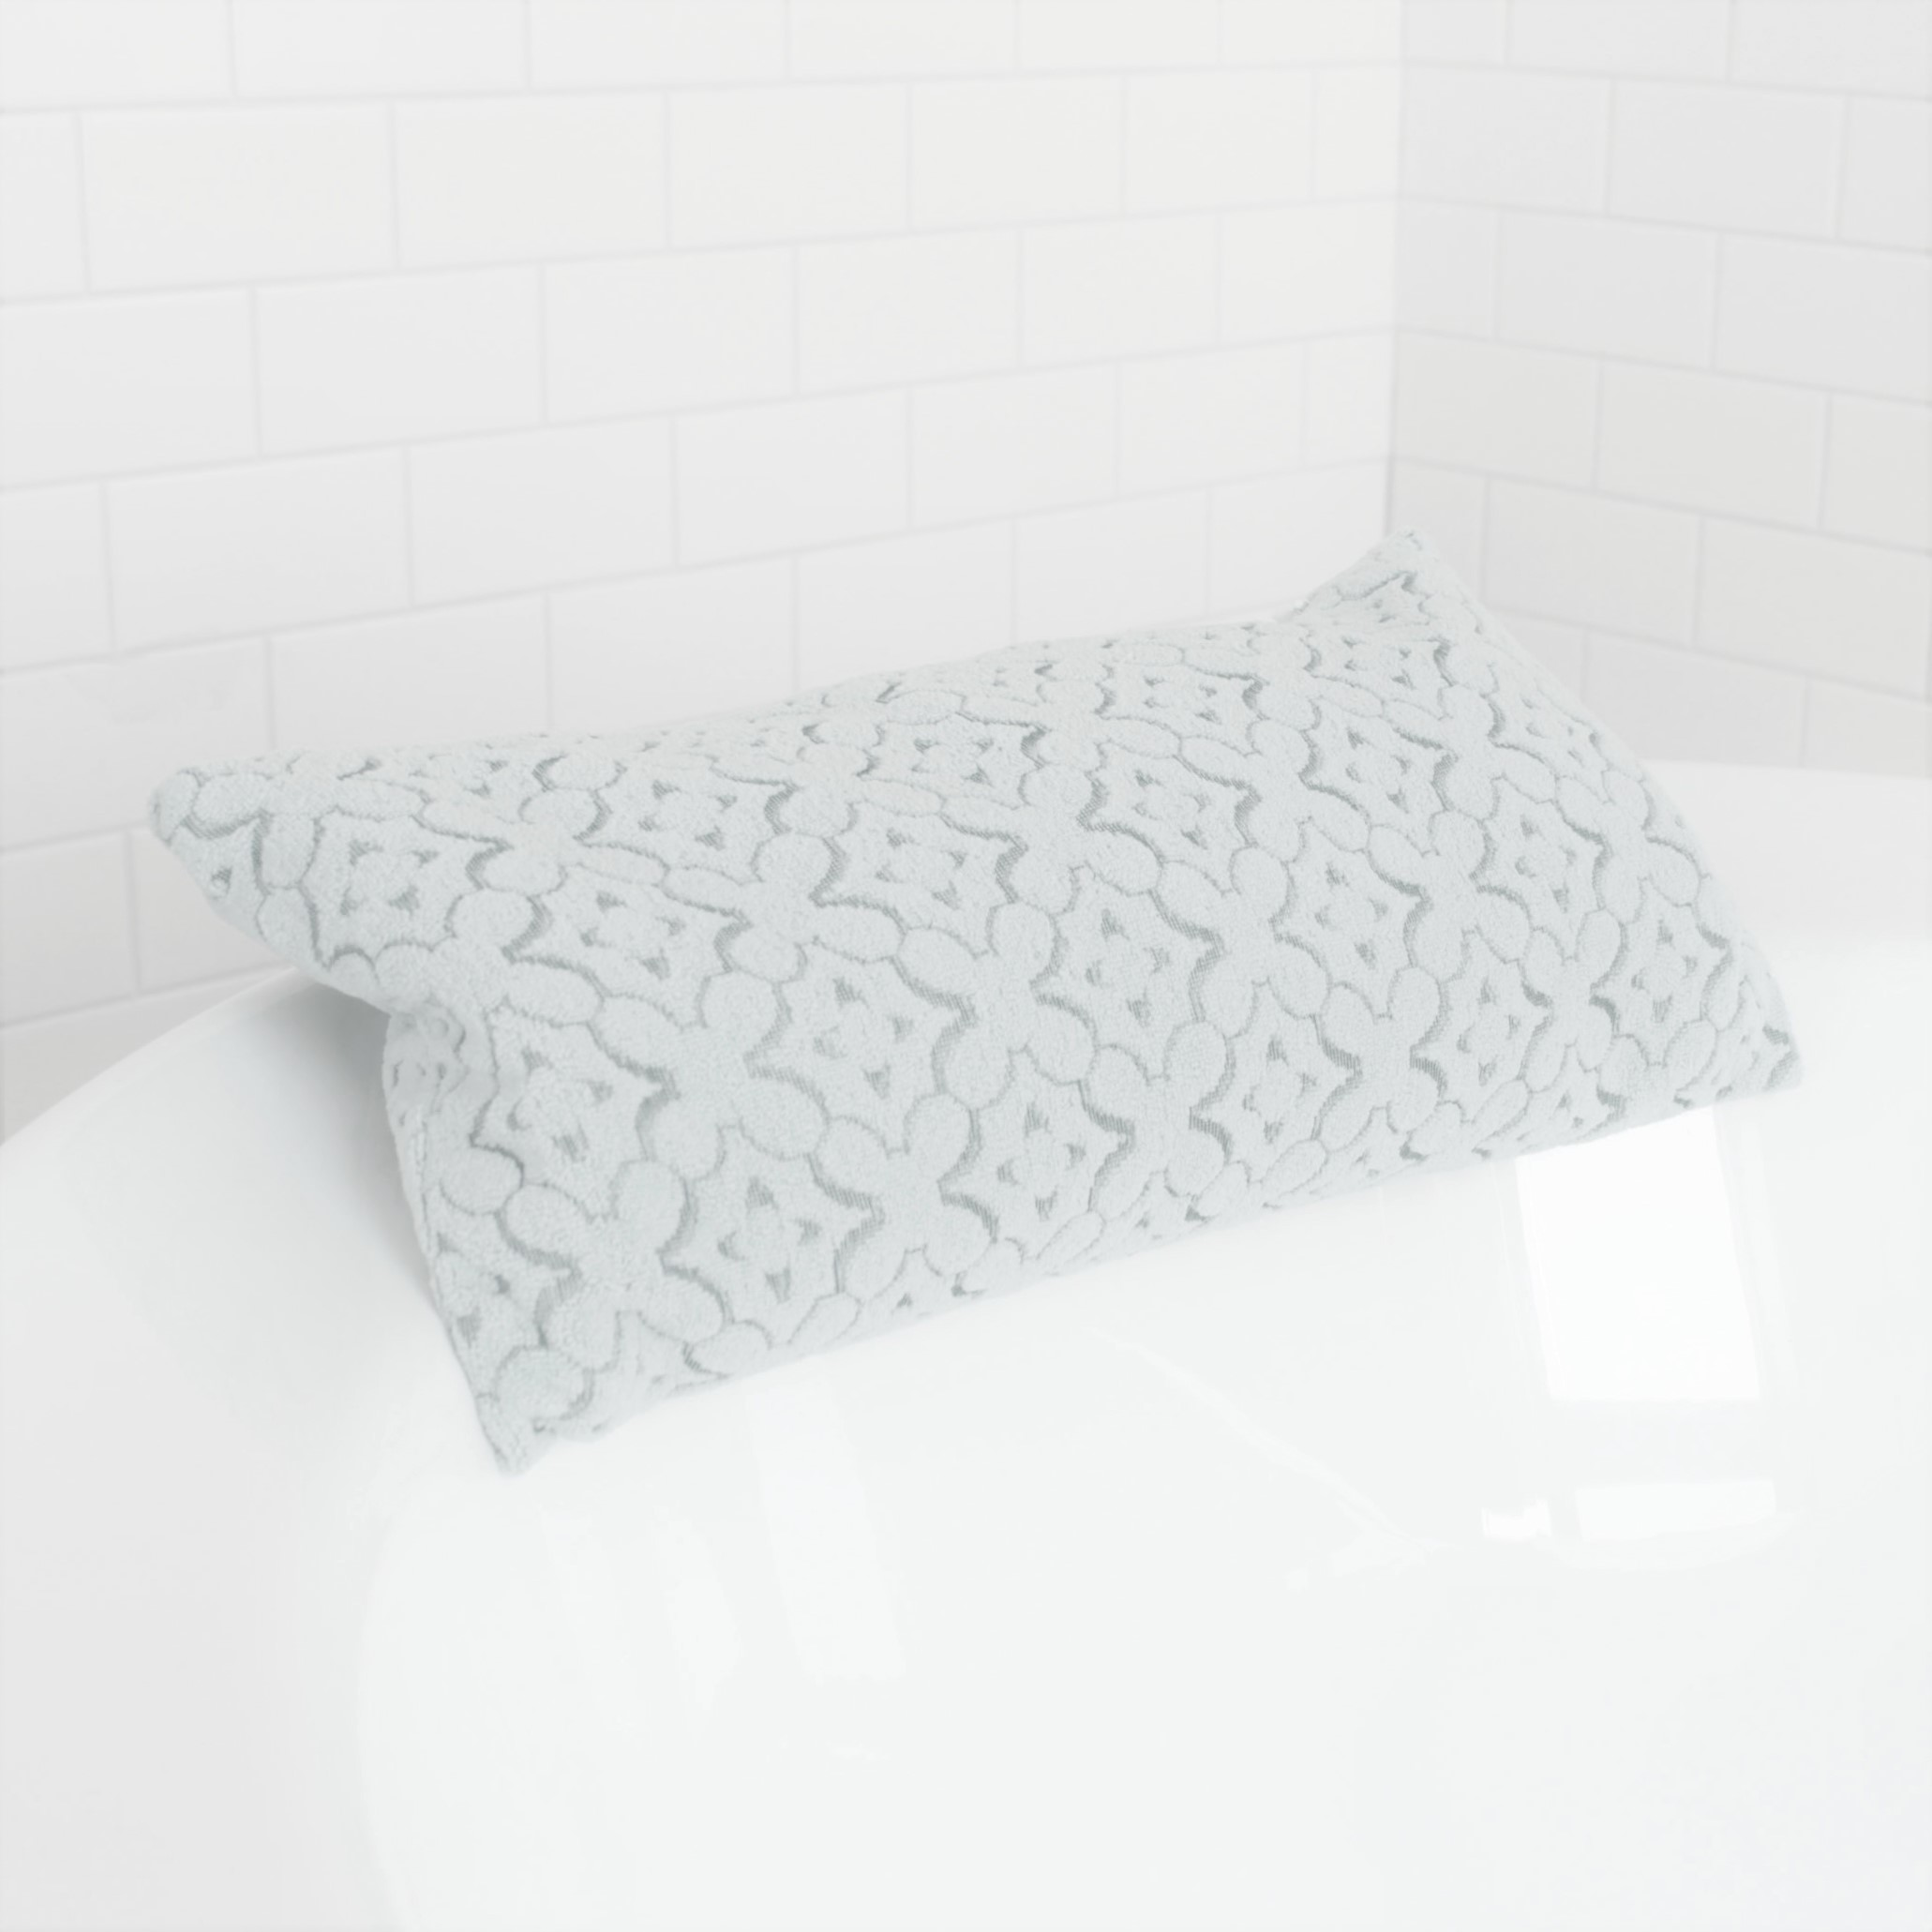 Sharuz fabric bath pillow